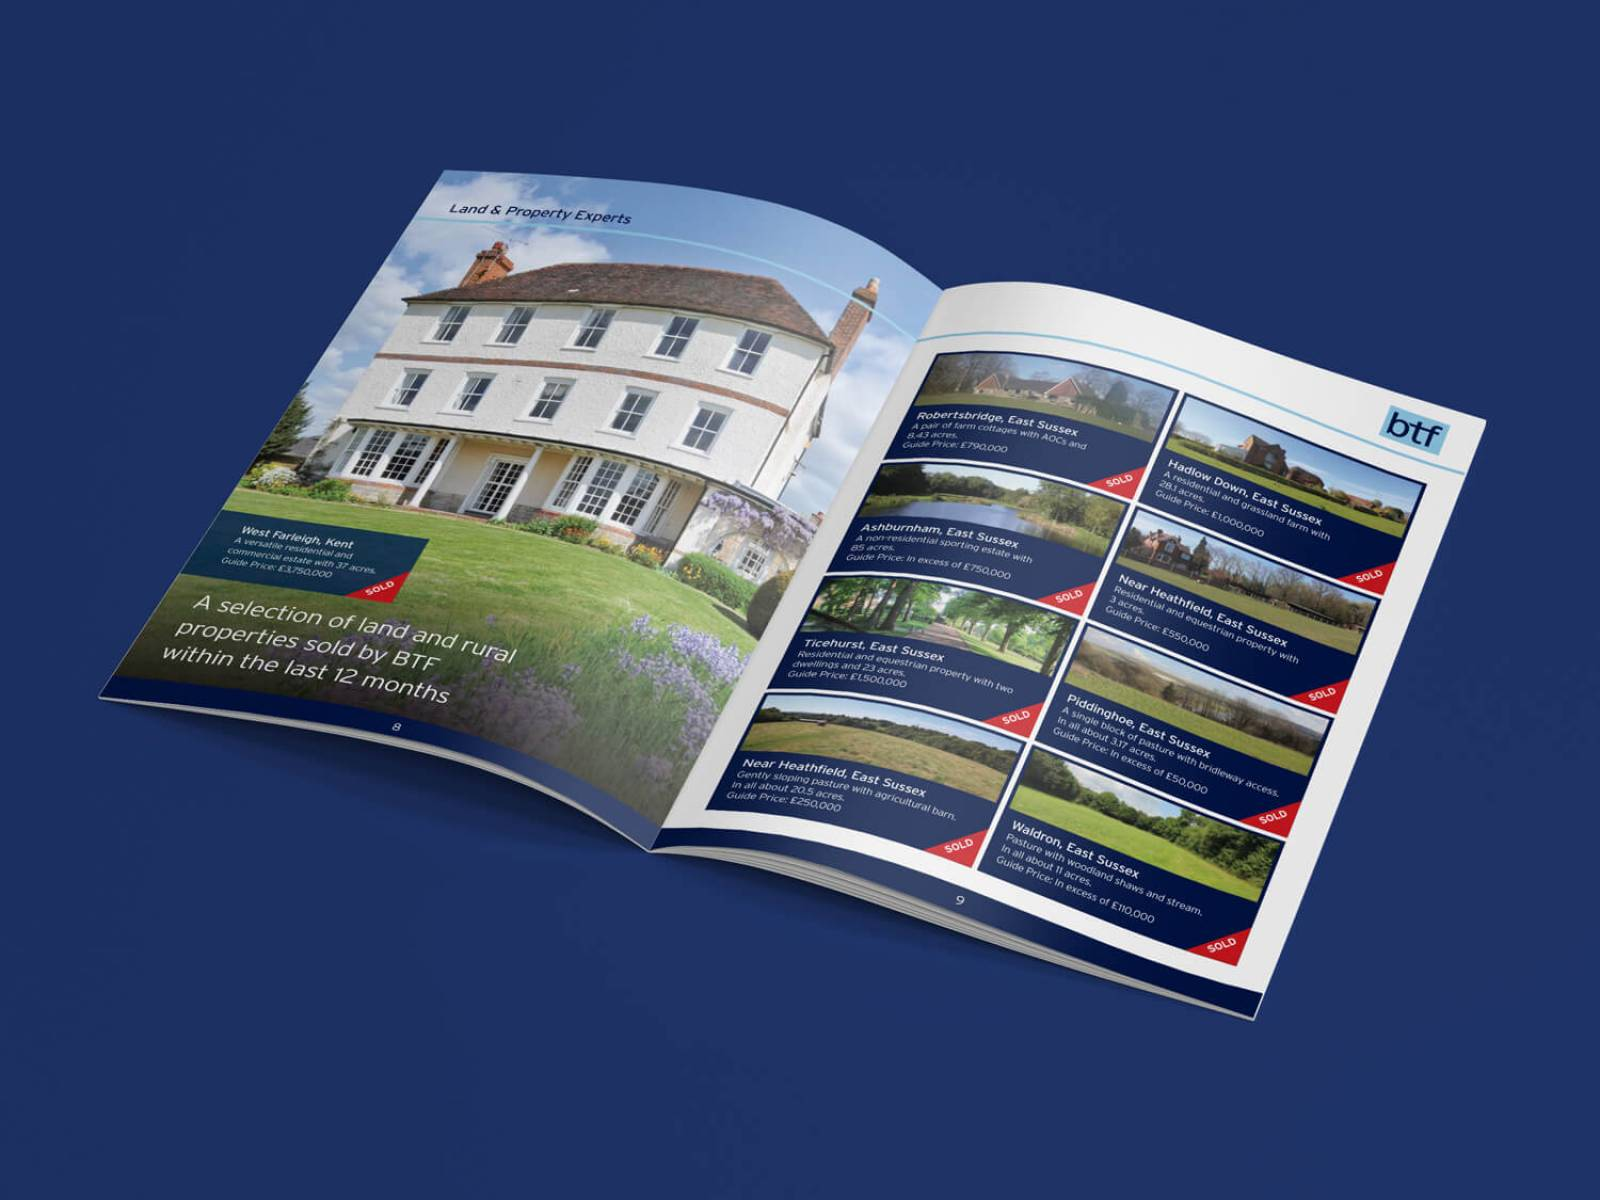 BTF-brochure-1-design-agency-graphic-design-canterbury.jpg